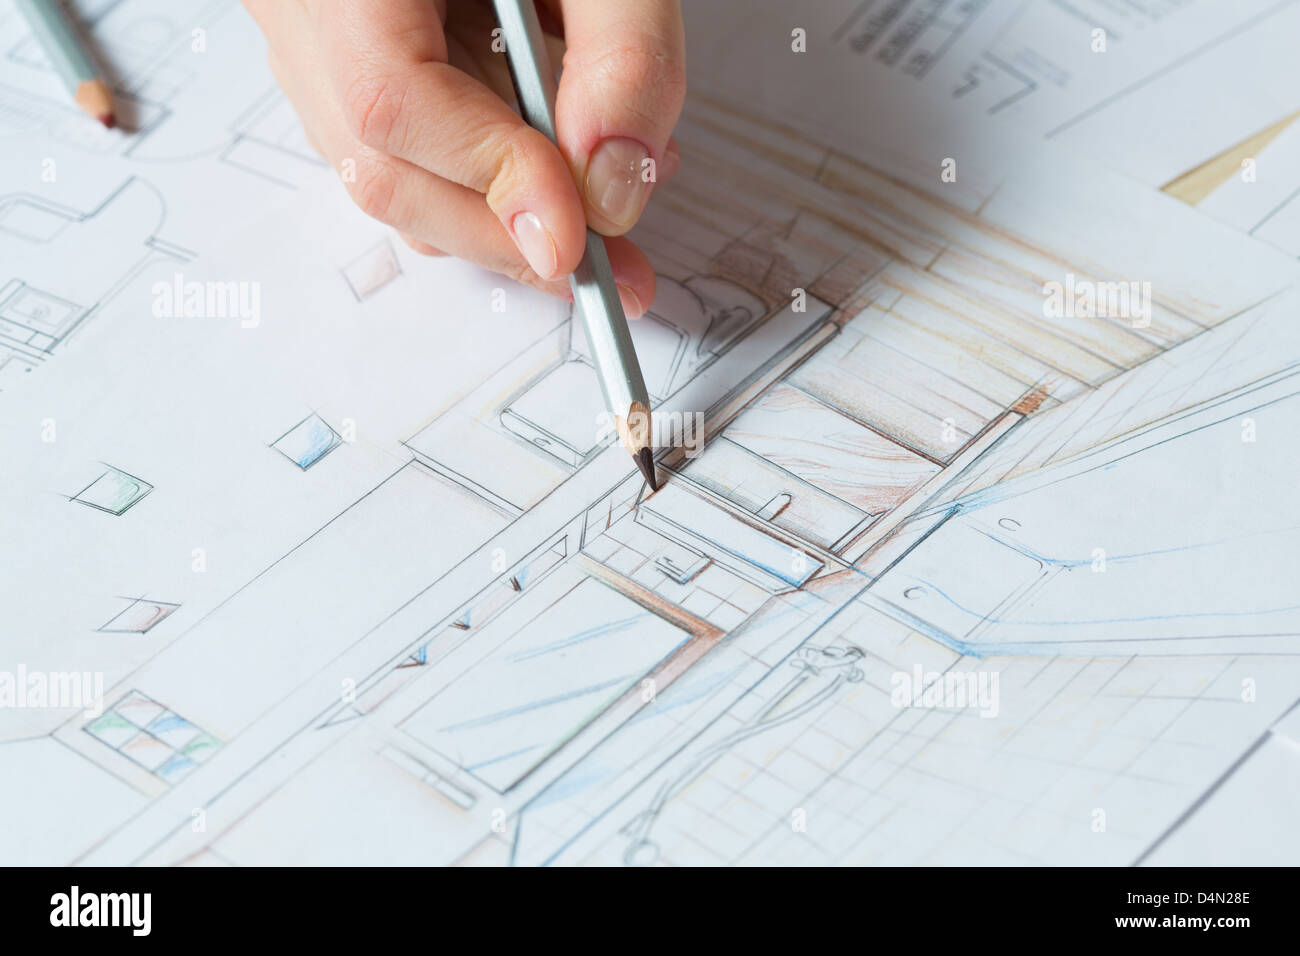 Bathroom Layout Design Tool Interior Designer Works On A Hand Drawing Sketch Using